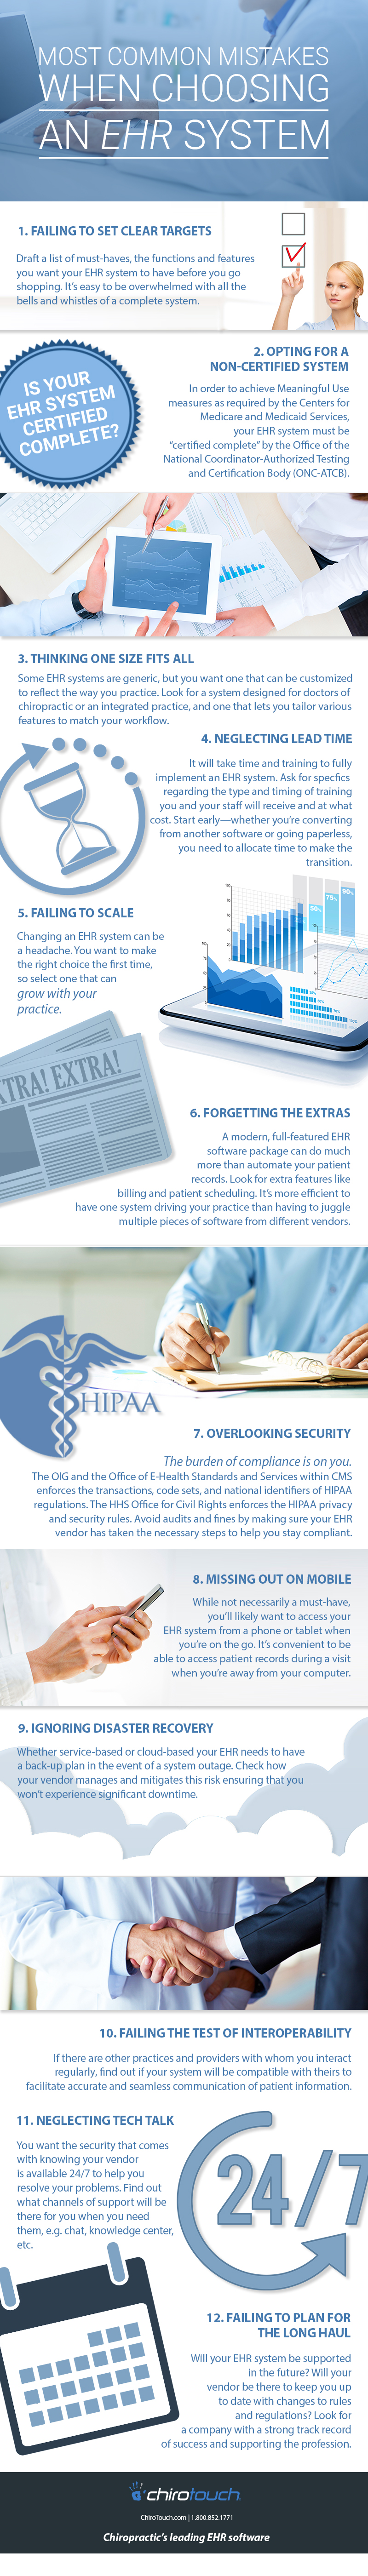 Don't make these common mistakes when choosing a chiropractic EHR system